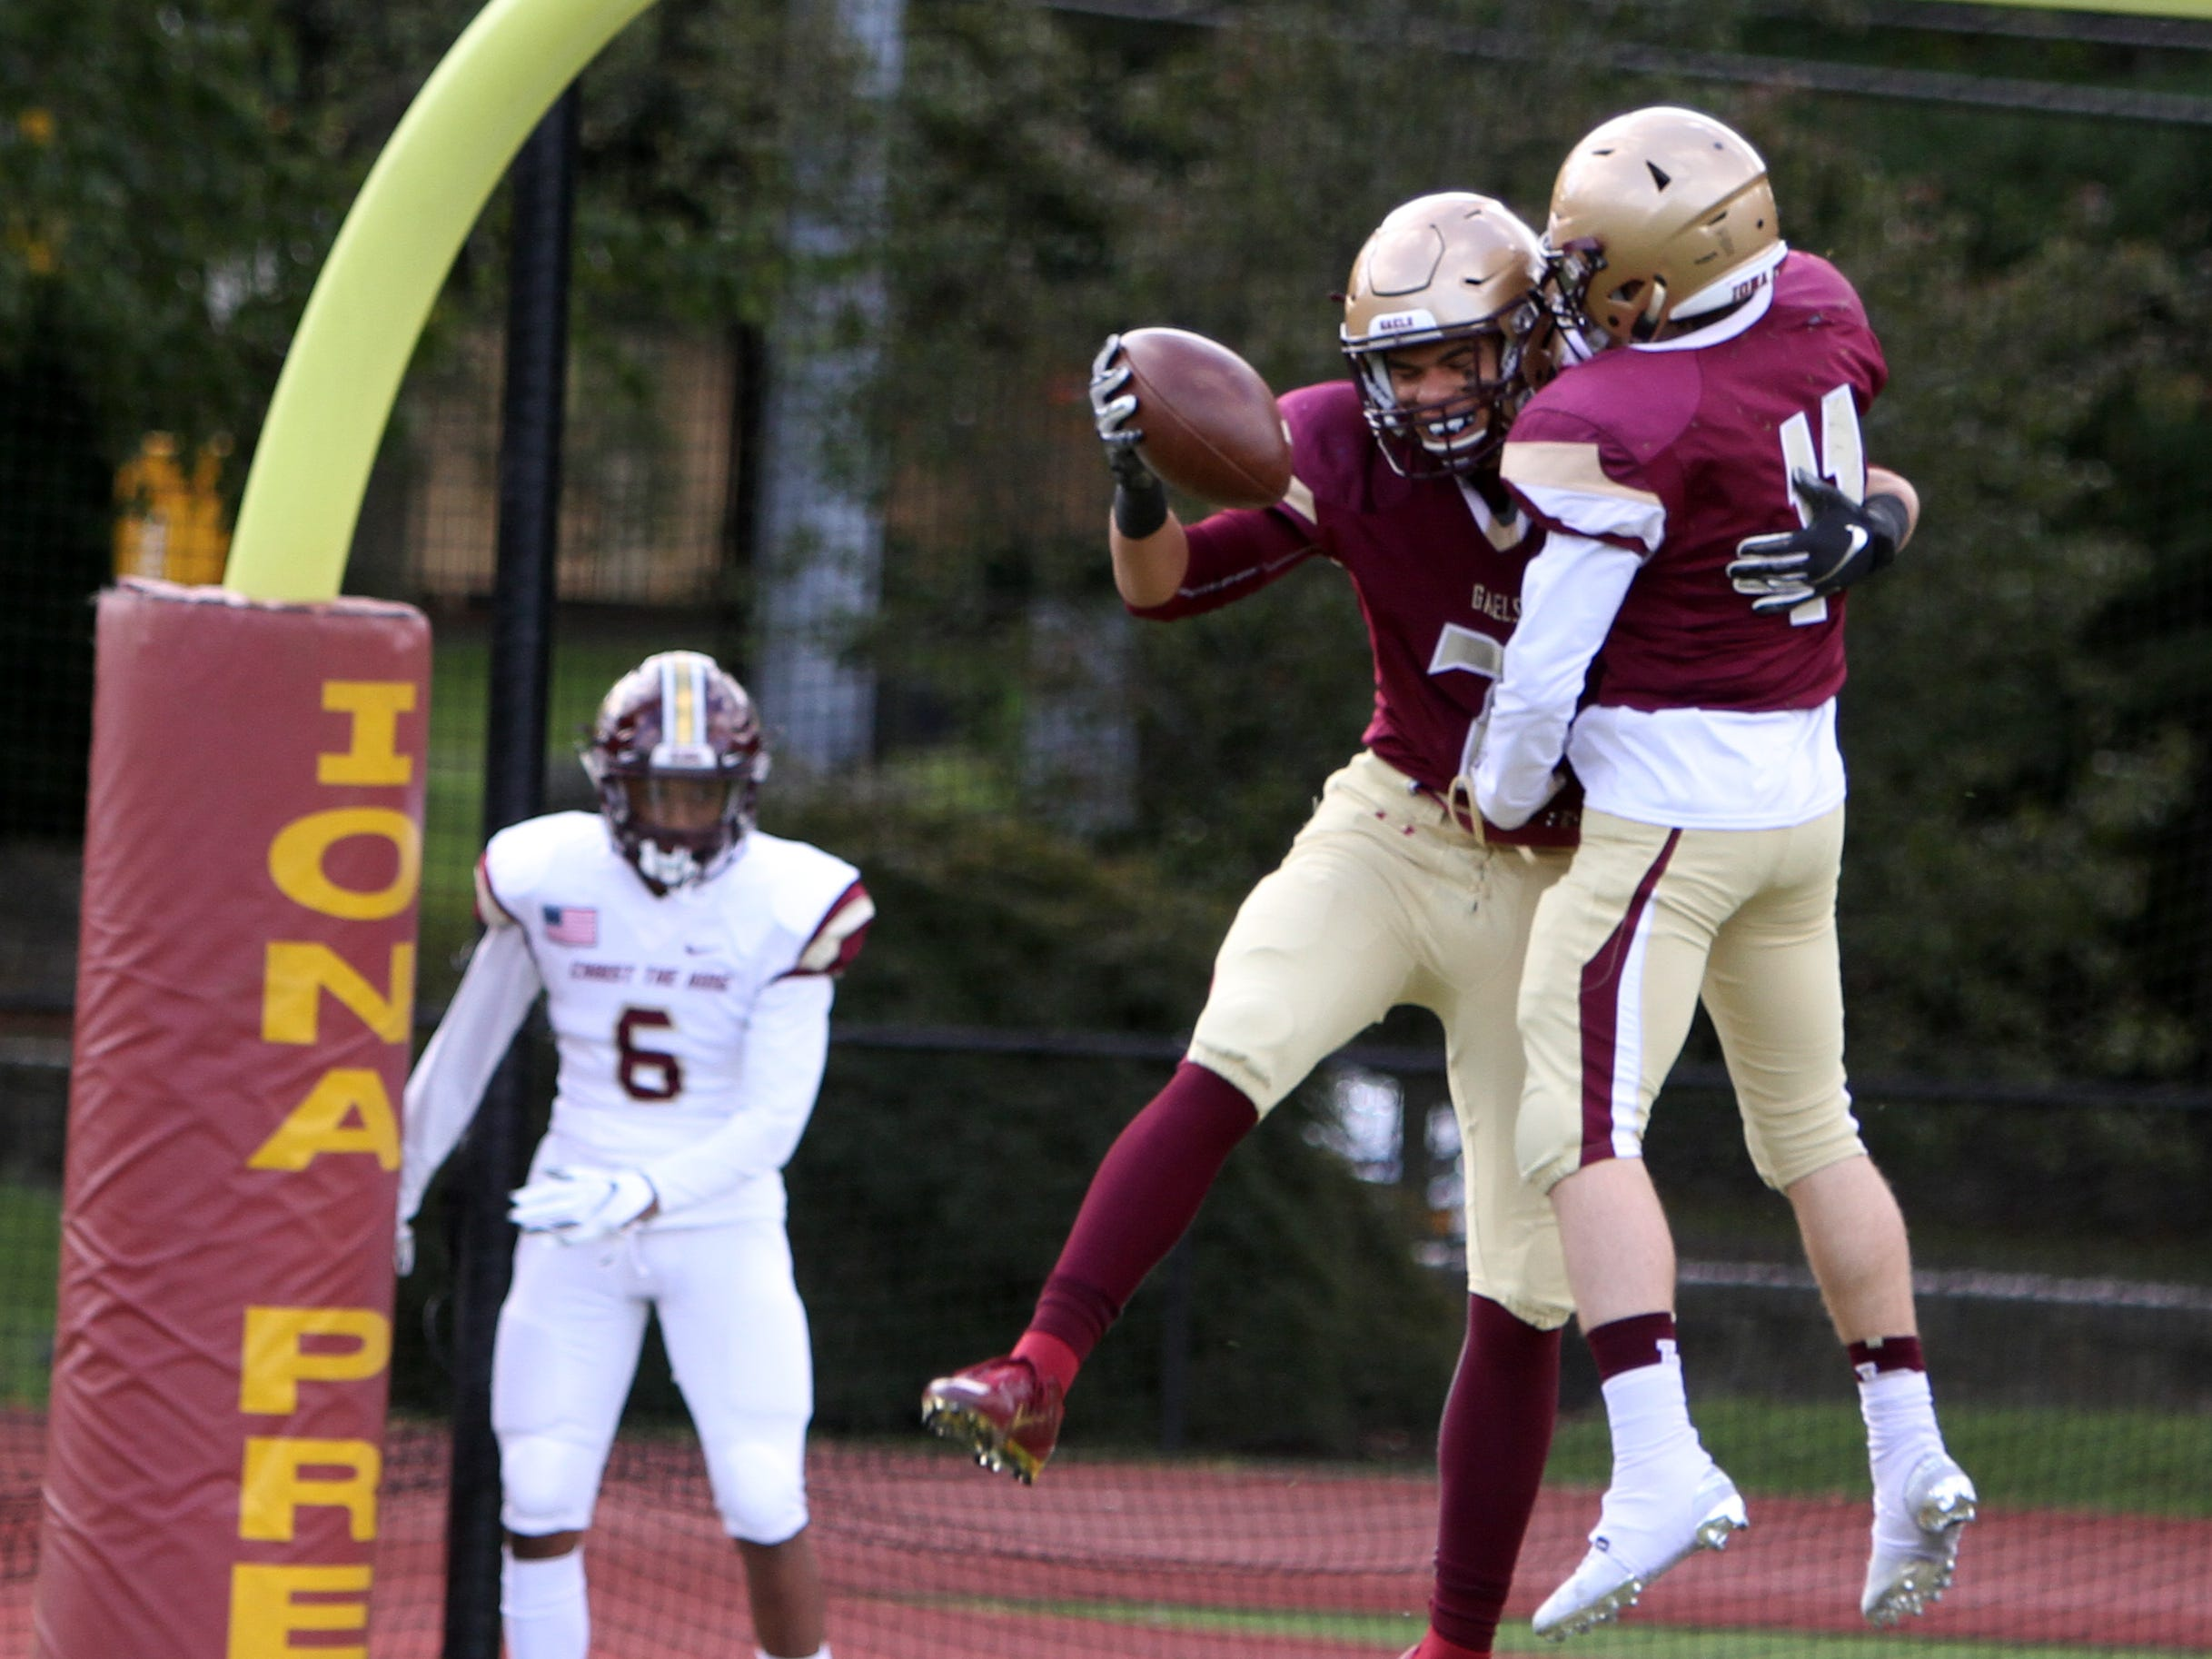 Iona Prep's Alex Williams (left) and Matt Panker celebrate after Williams scored a touchdown during their game against Christ the King on October 13th, 2018 at Iona Prep. Iona Prep would win the game 42-12.